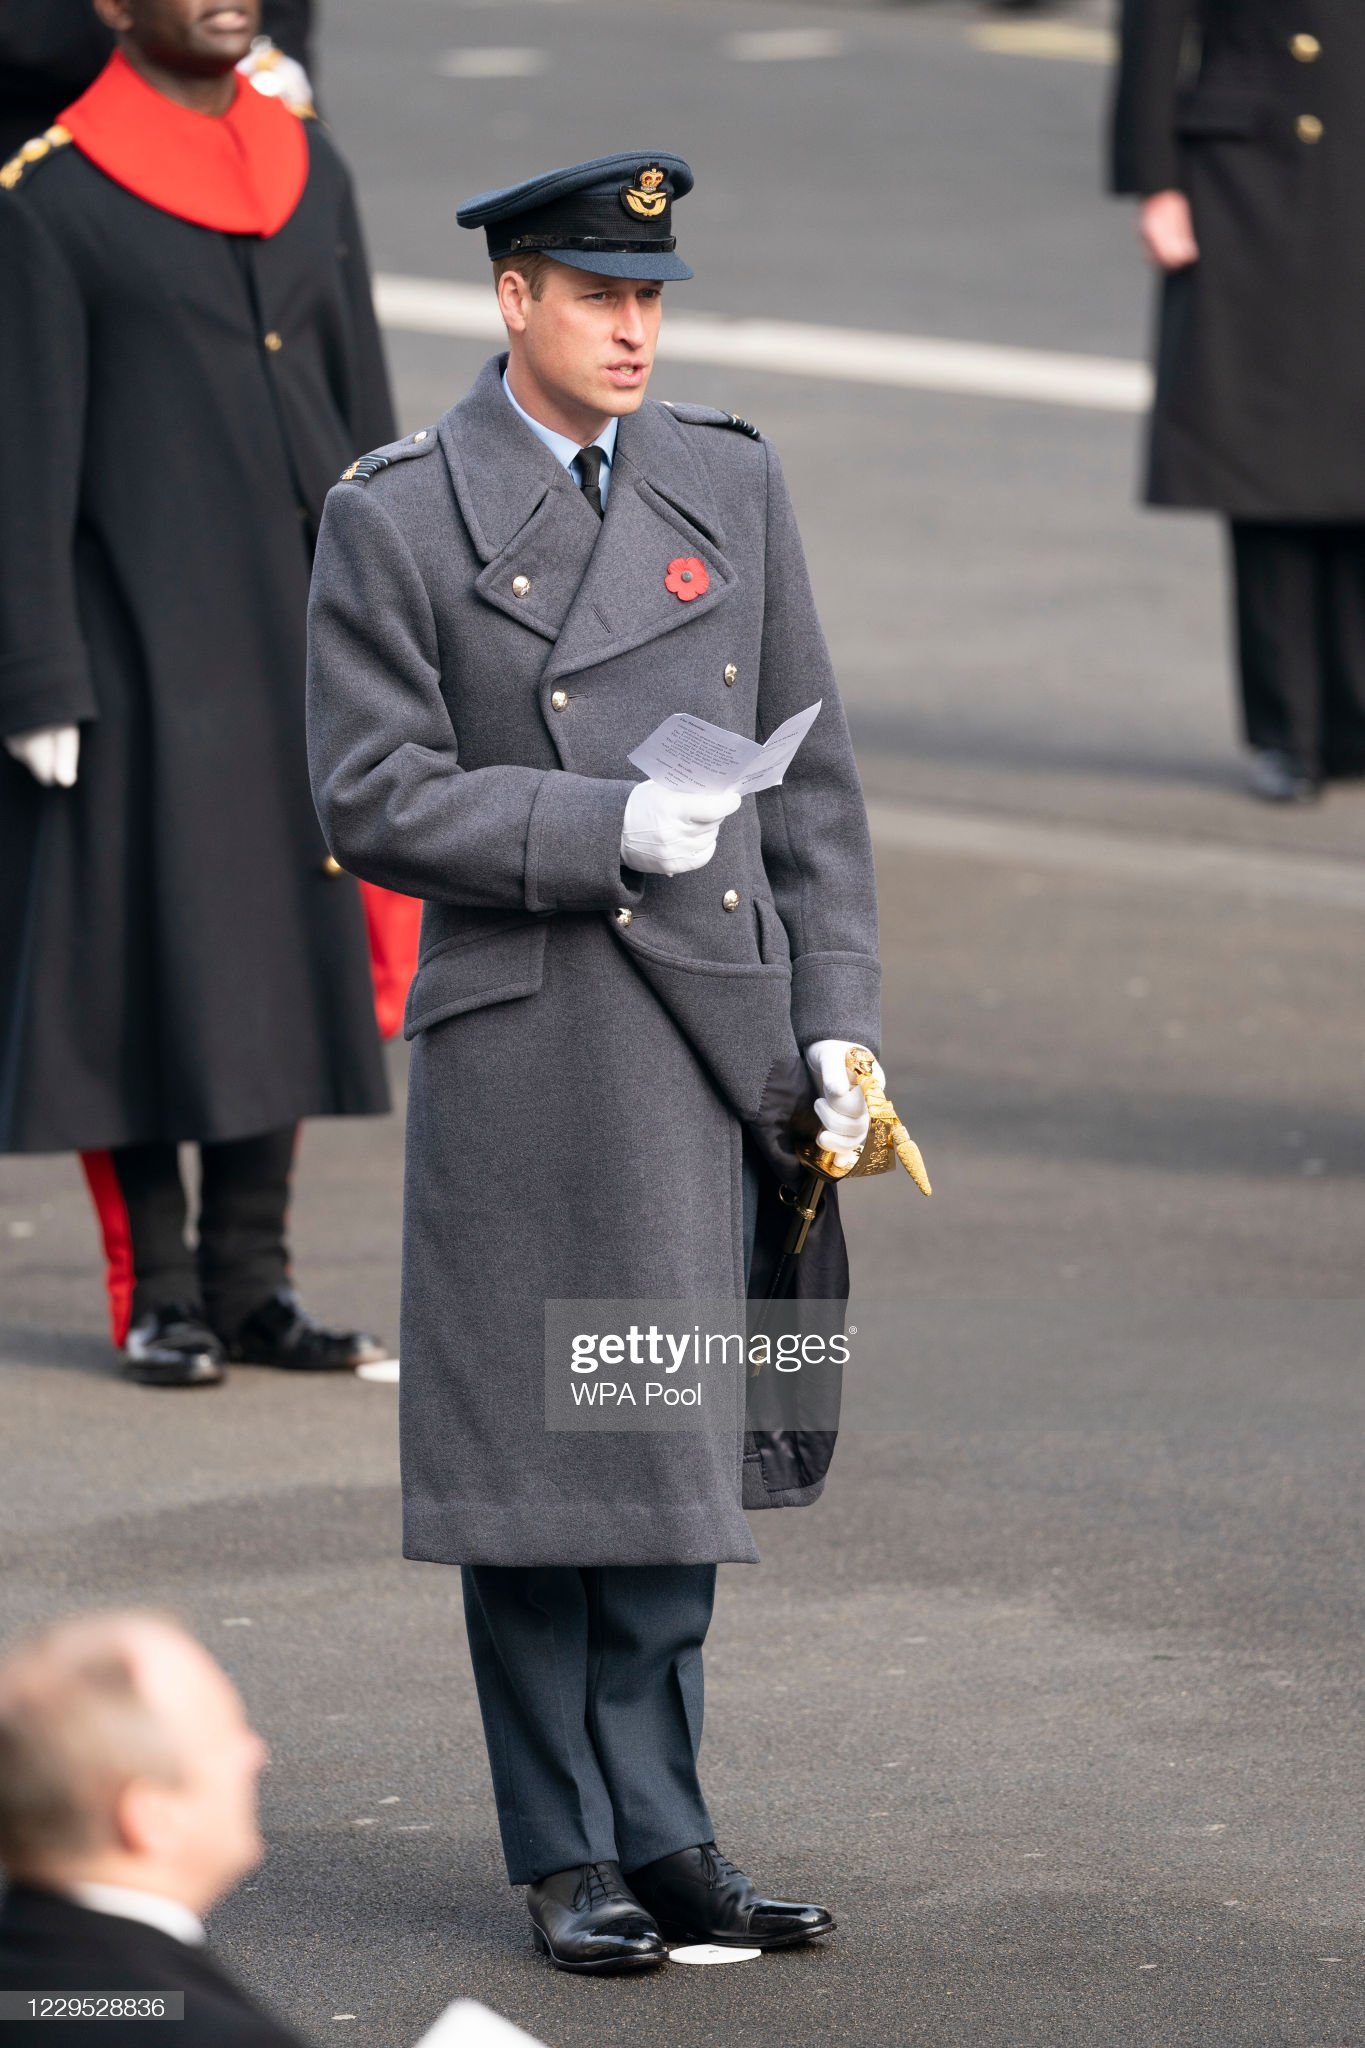 https://media.gettyimages.com/photos/prince-william-duke-of-cambridge-attends-the-national-service-of-at-picture-id1229528836?s=2048x2048